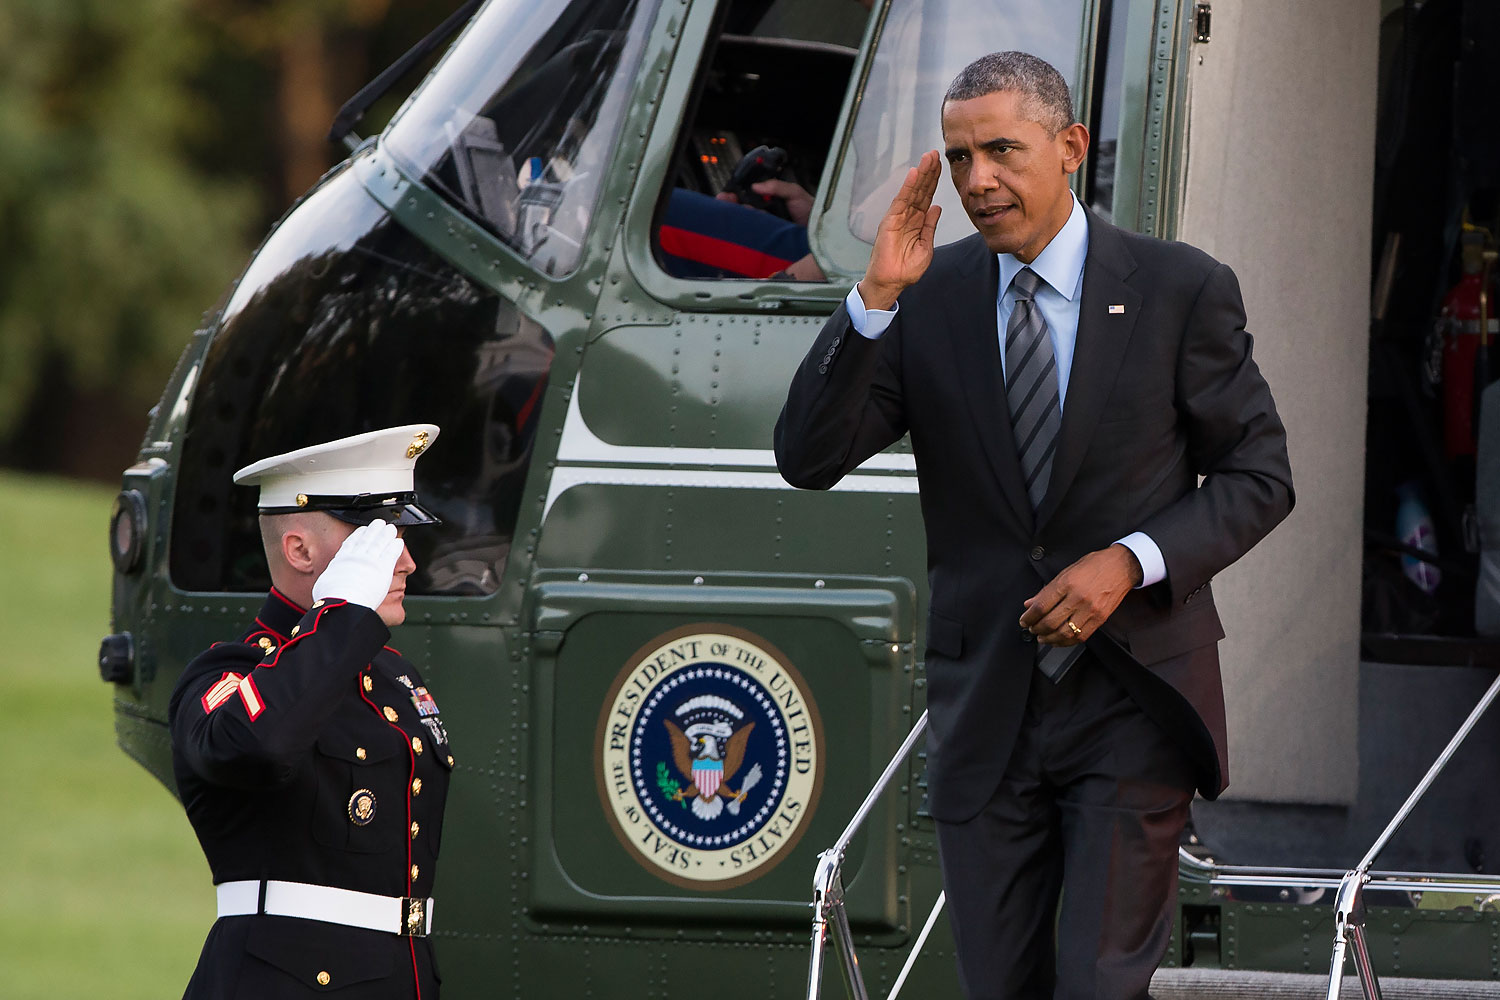 President Barack Obama salutes as he arrives on the South Lawn of the White House, in Washington, D.C., on Sept. 12, 2014